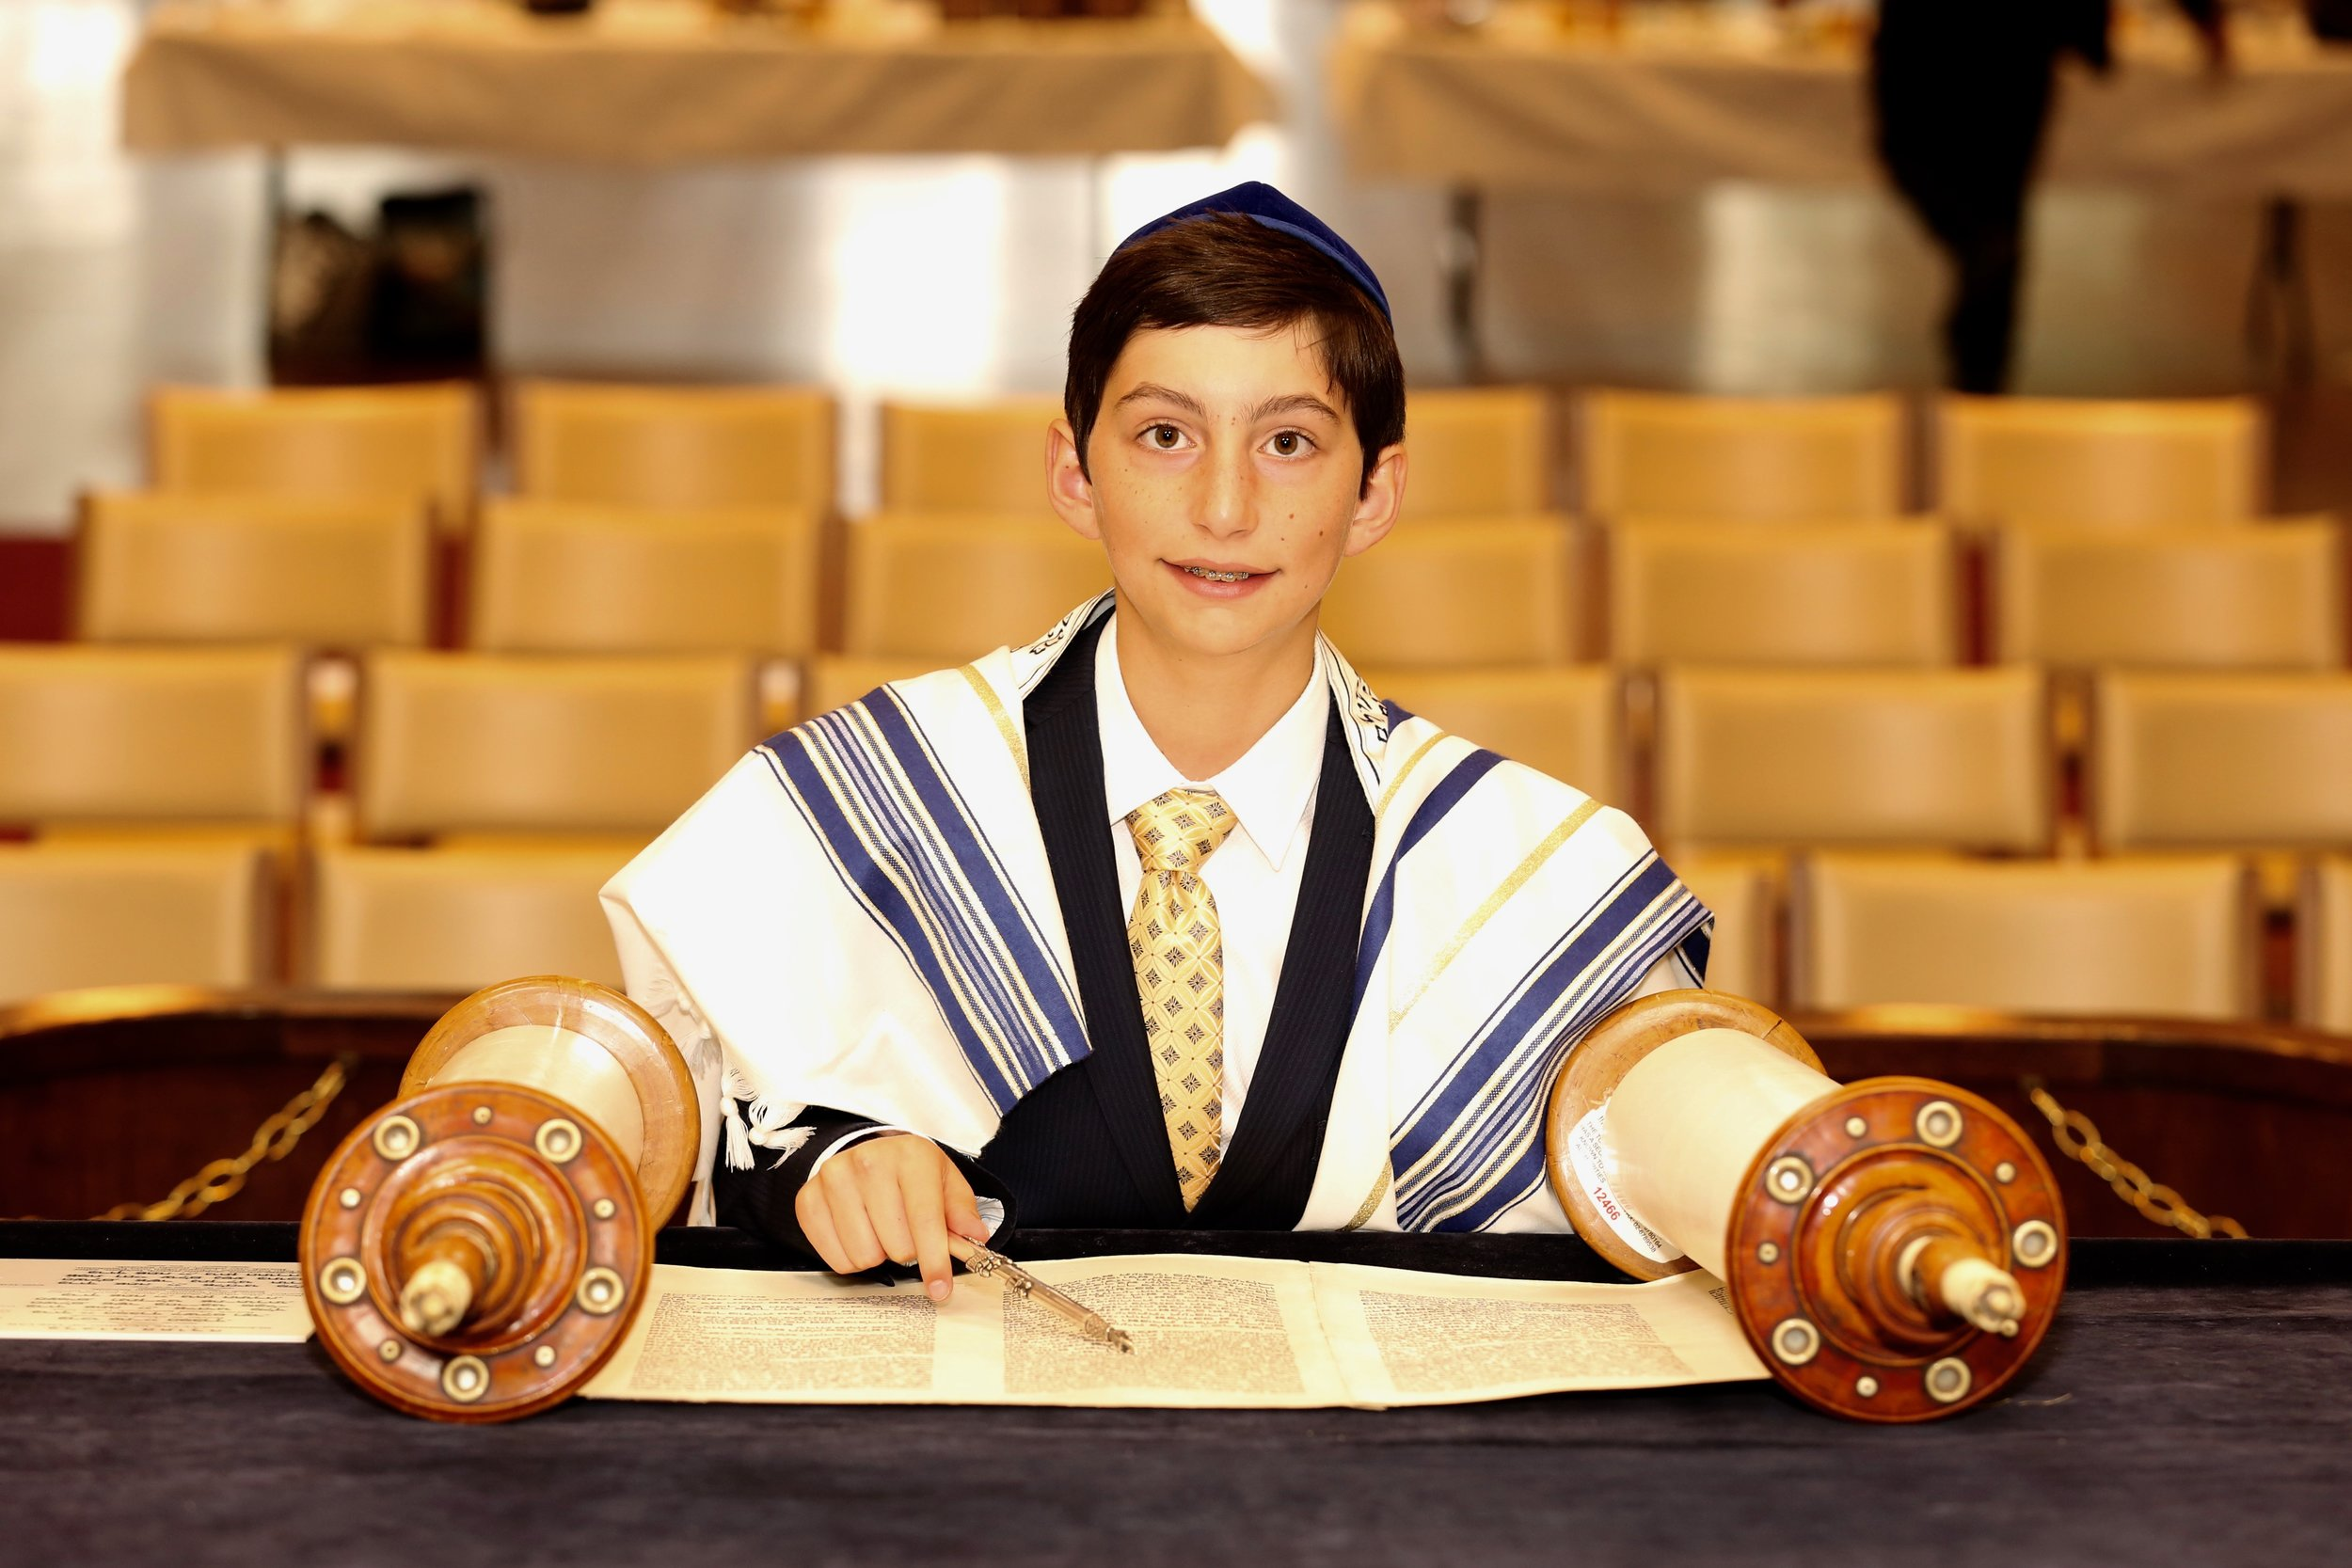 Bar Mitzvah Service at Congregation Etz Chaim, New Jersey